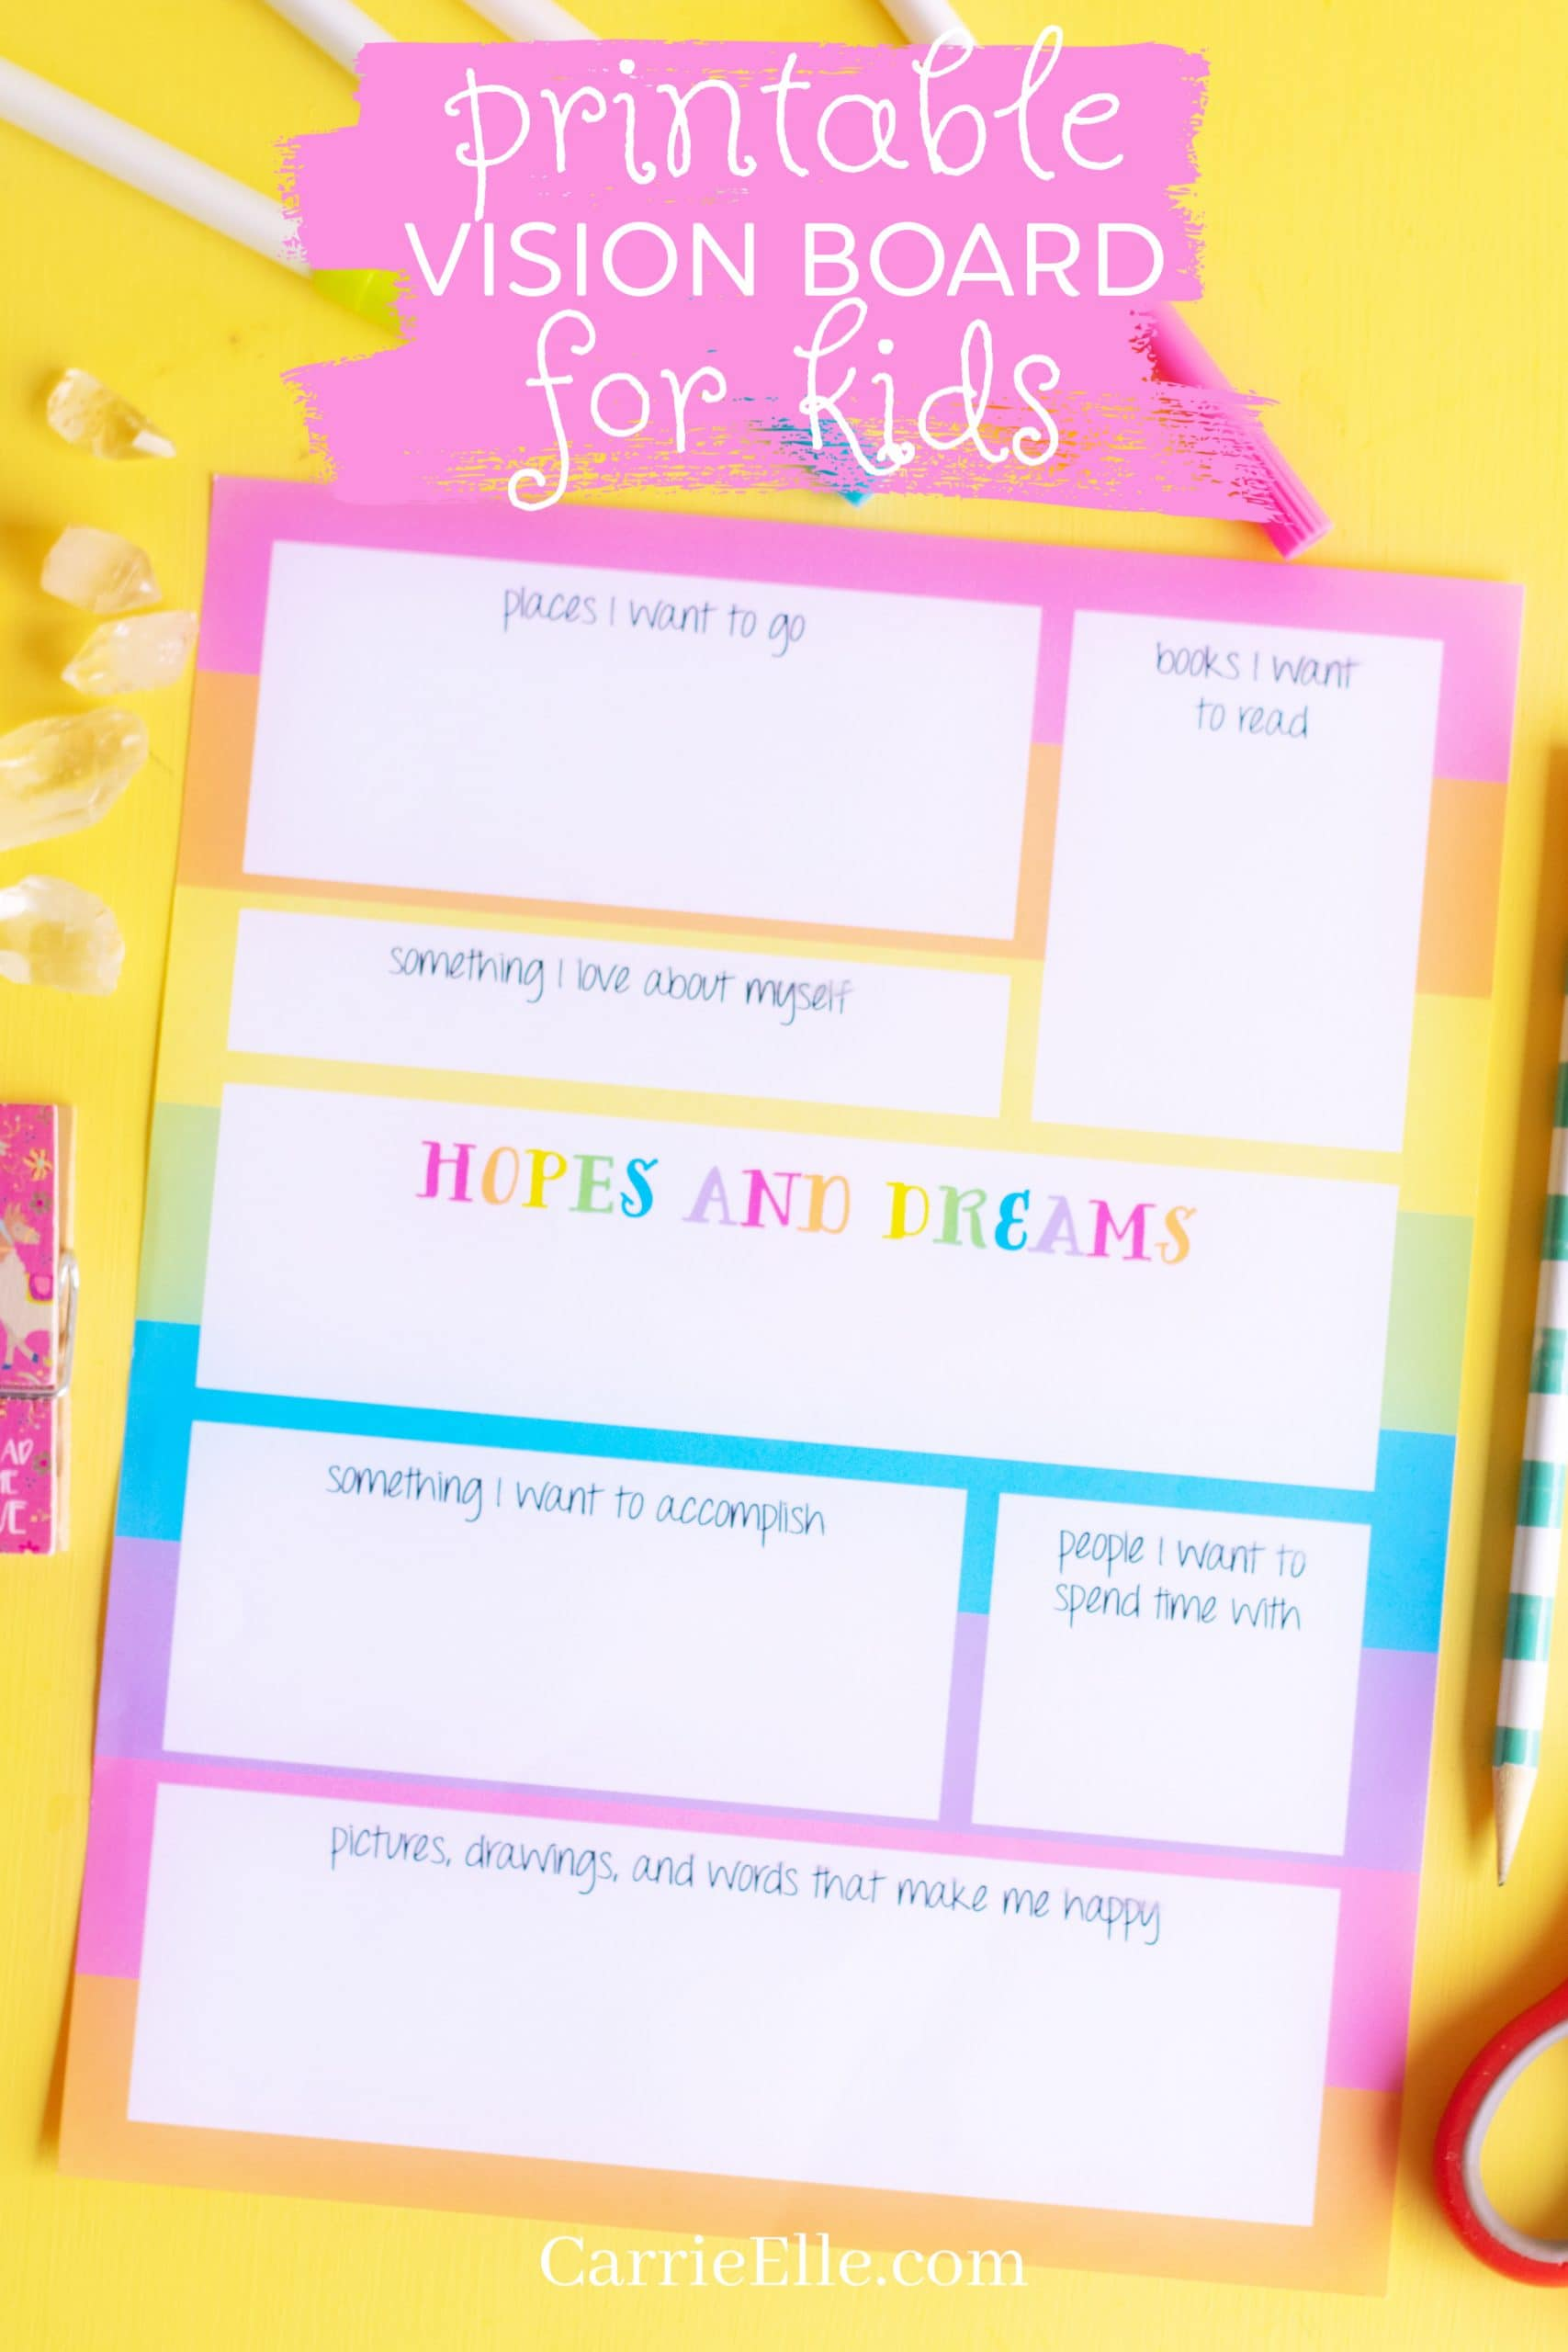 Printable Vision Board Template for Kids CarrieElle.com